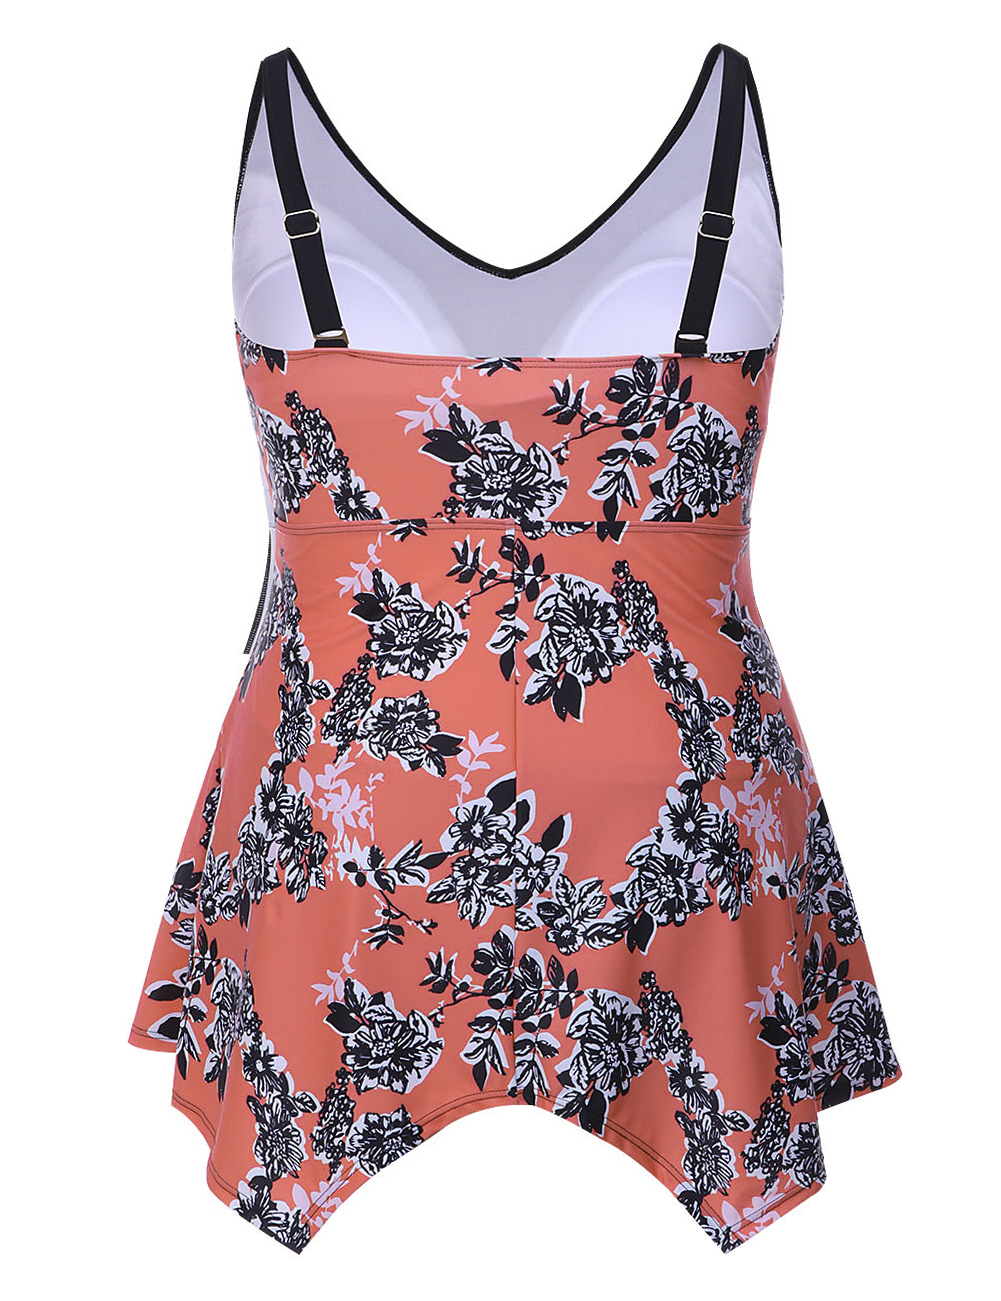 //cdn.affectcloud.com/hexinfashion/upload/imgs/Swimwear/One_Piece_Swimwear/LB16038410D/LB16038410D-201911055dc131db778bd.jpg